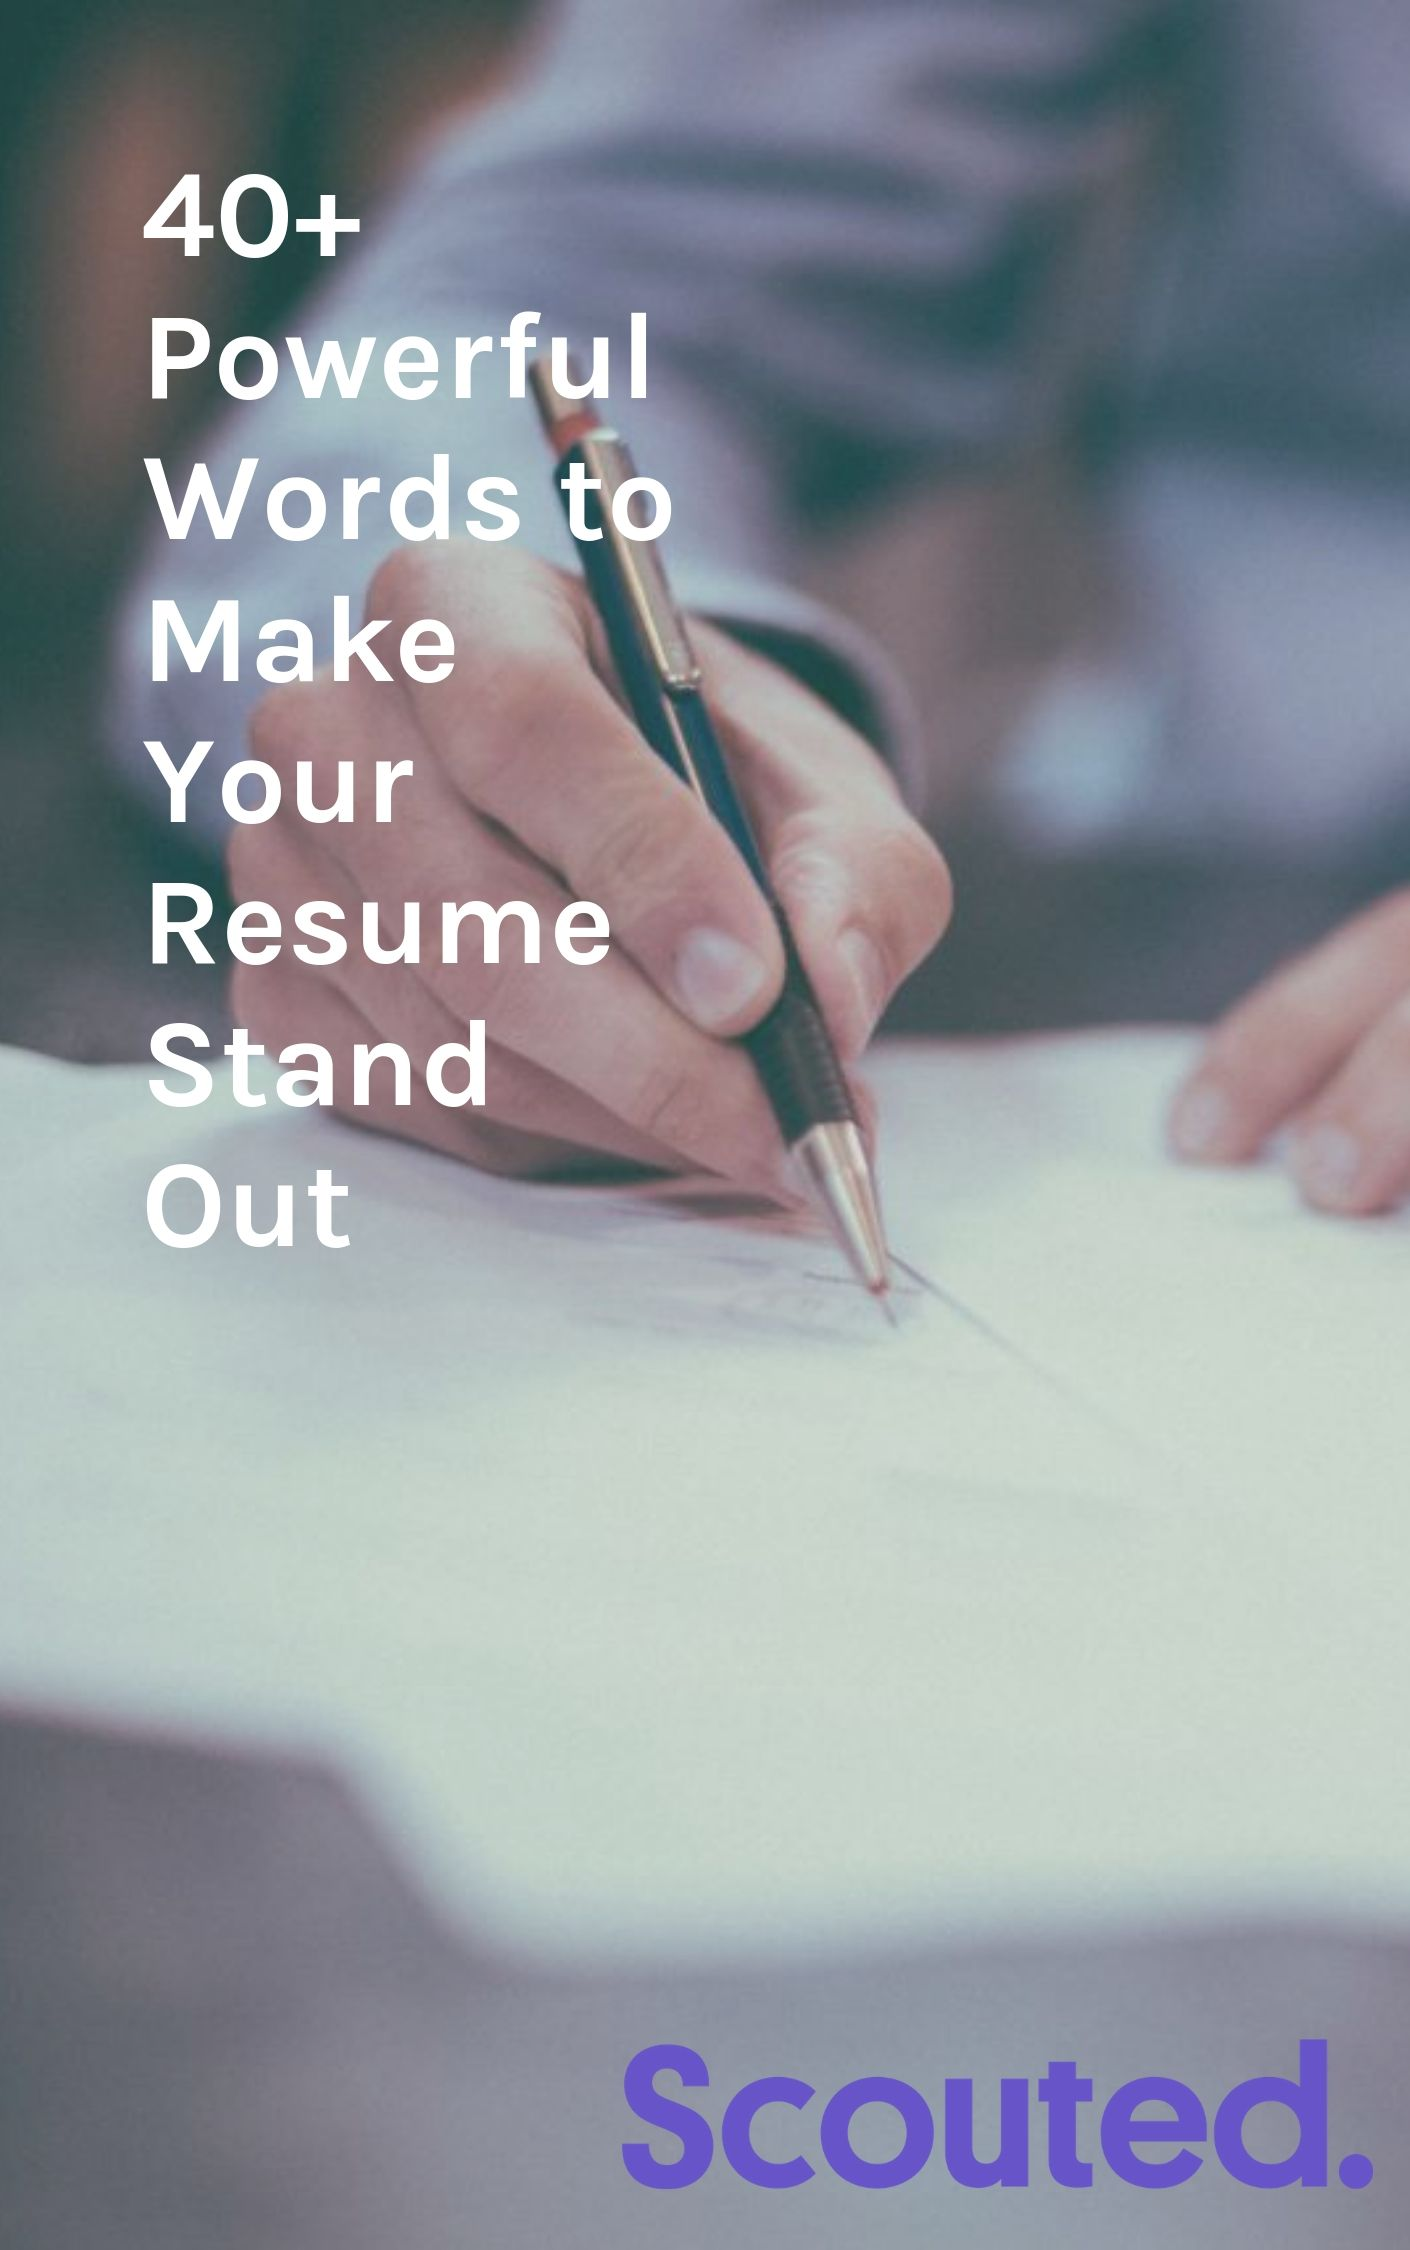 While you don't have to copy and pastethesewords and force them into your resume, take a hard look at your resume and ask yourself if it really tells a hiring manager what you can do for them. And if you feel inclined to some word inspiration to help spruce up your resume, take a look at the list we curated below and feel free to glitter your resume with words that will show a hiring manager that you're a game changer. You don't just show up and do a job, you show up and make a difference.